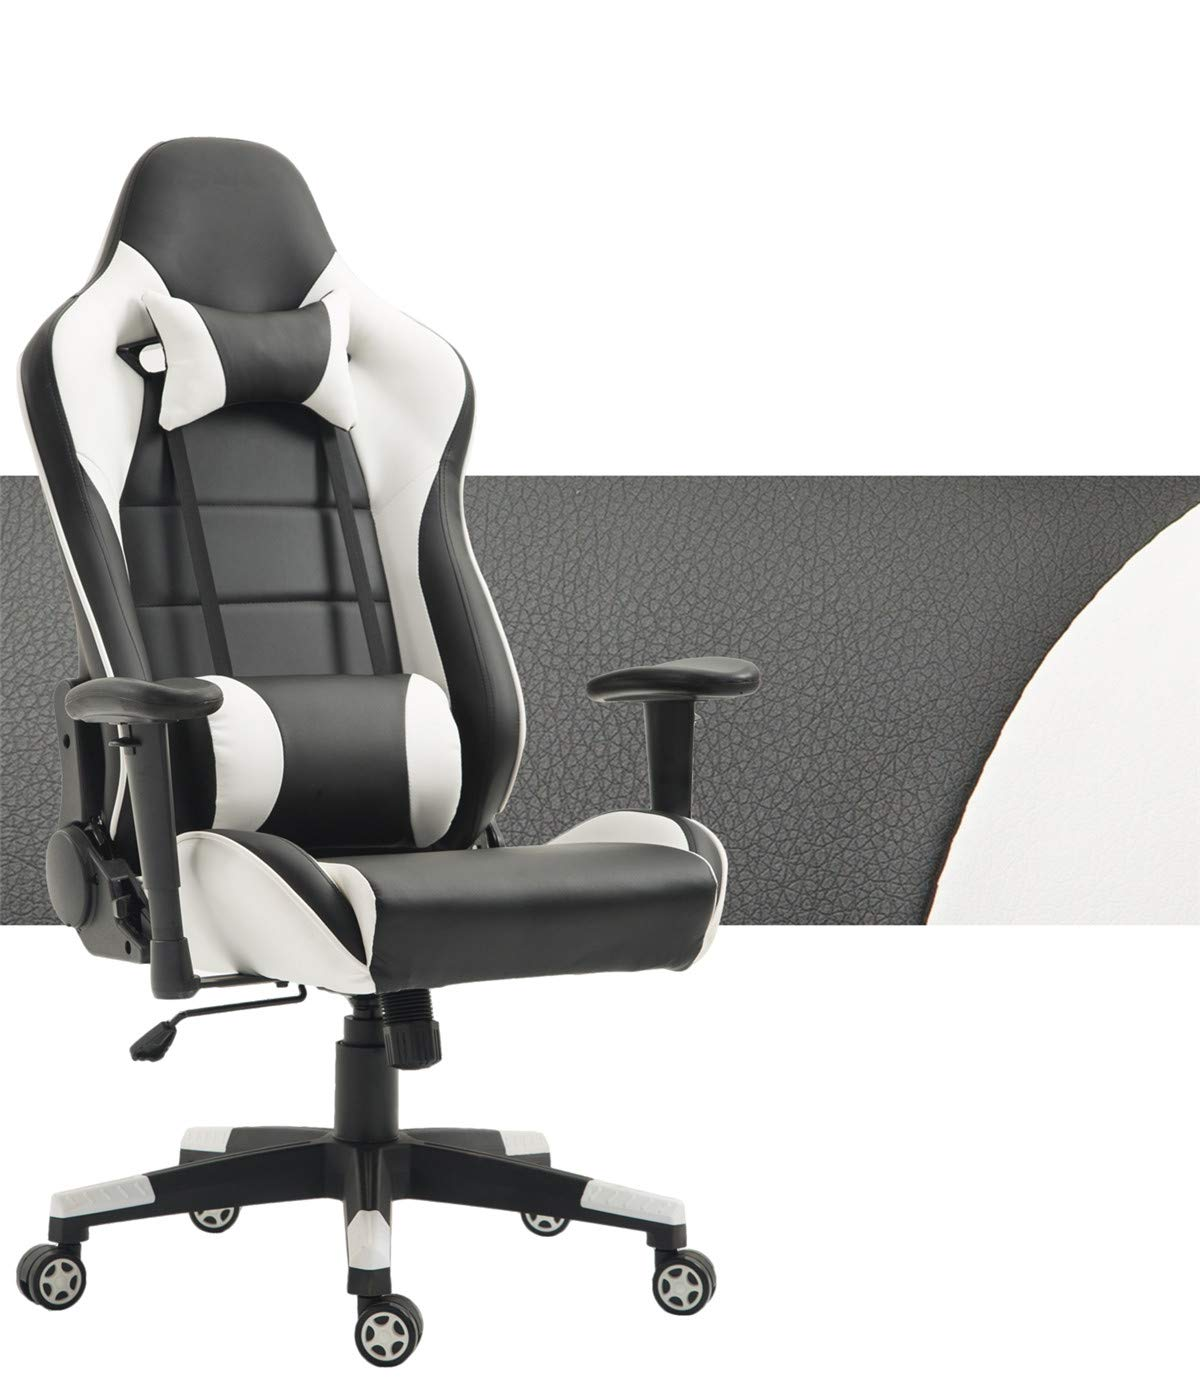 Racing Gaming Chair Memory Foam Leather Video Game Chairs Ergonomic Swivel Computer Chair High Back Leather Chair with Lumbar Cushion for Home Entertainment Furniture (Black/Grey) Trumchi